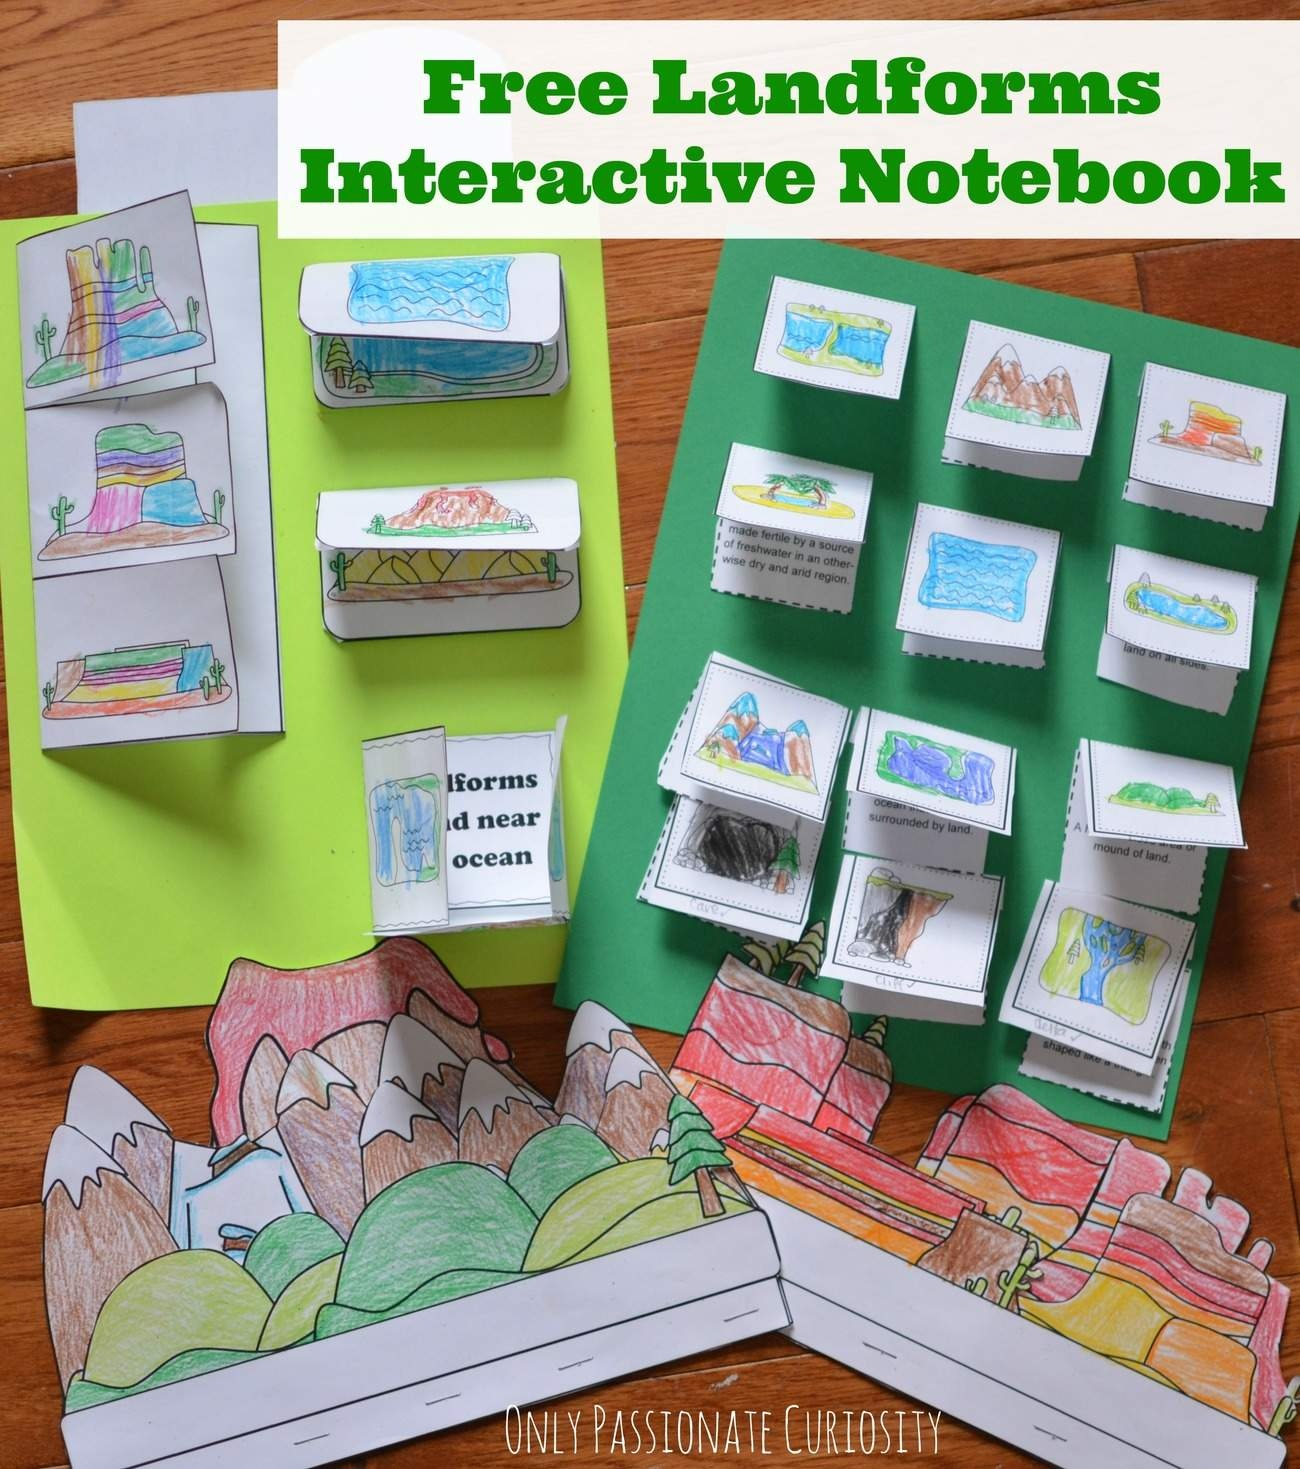 Landforms Interactive Notebook Pack - Only Passionate Curiosity - Free Interactive Notebook Printables